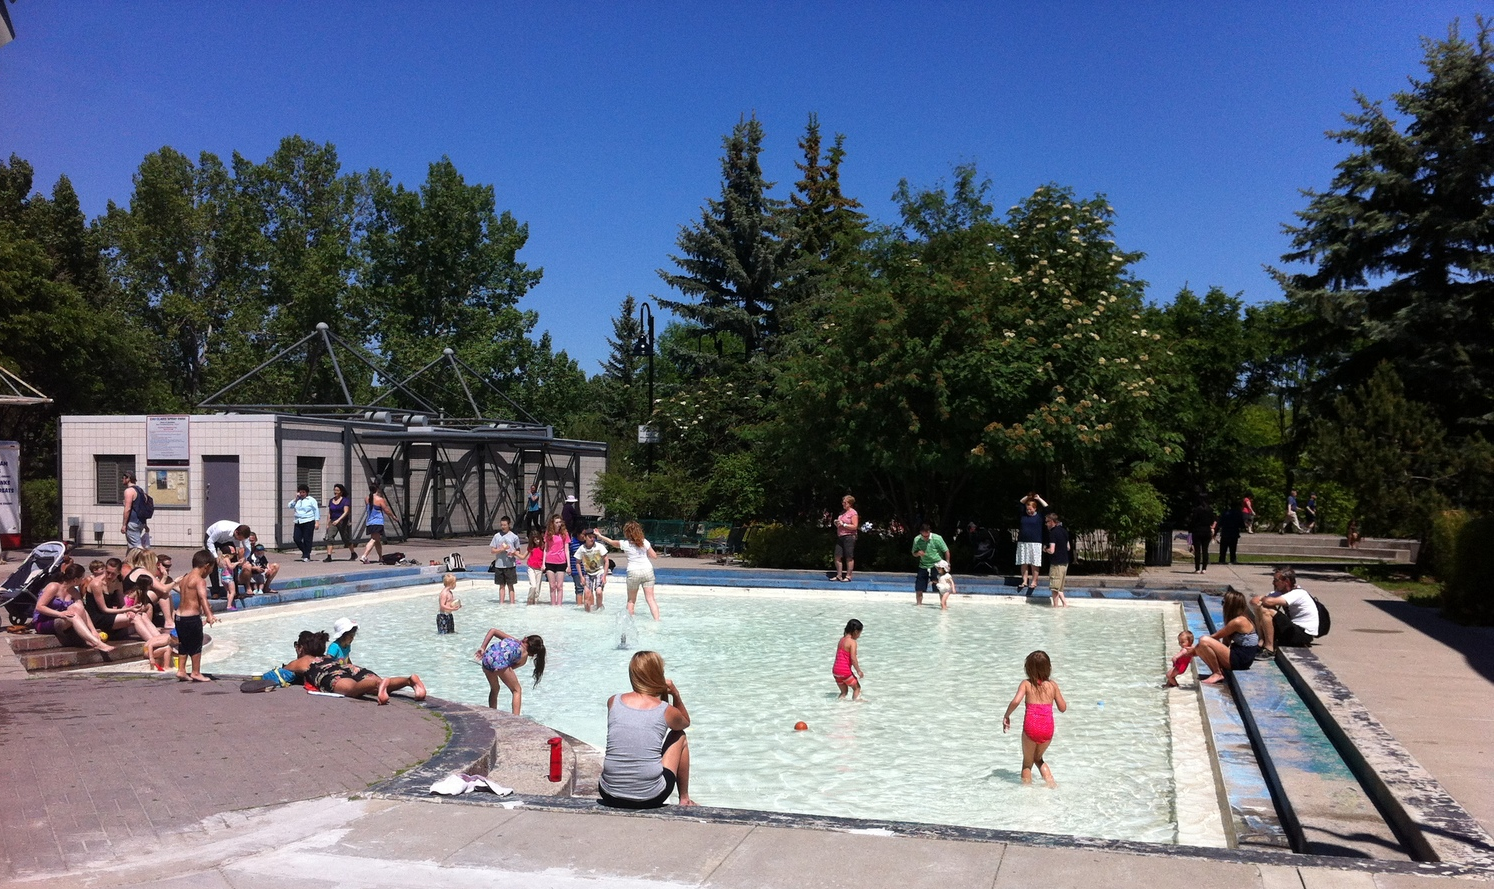 The Eau Claire Plaza pool is a popular place for families to meet up during the power hour and have some quality family time.